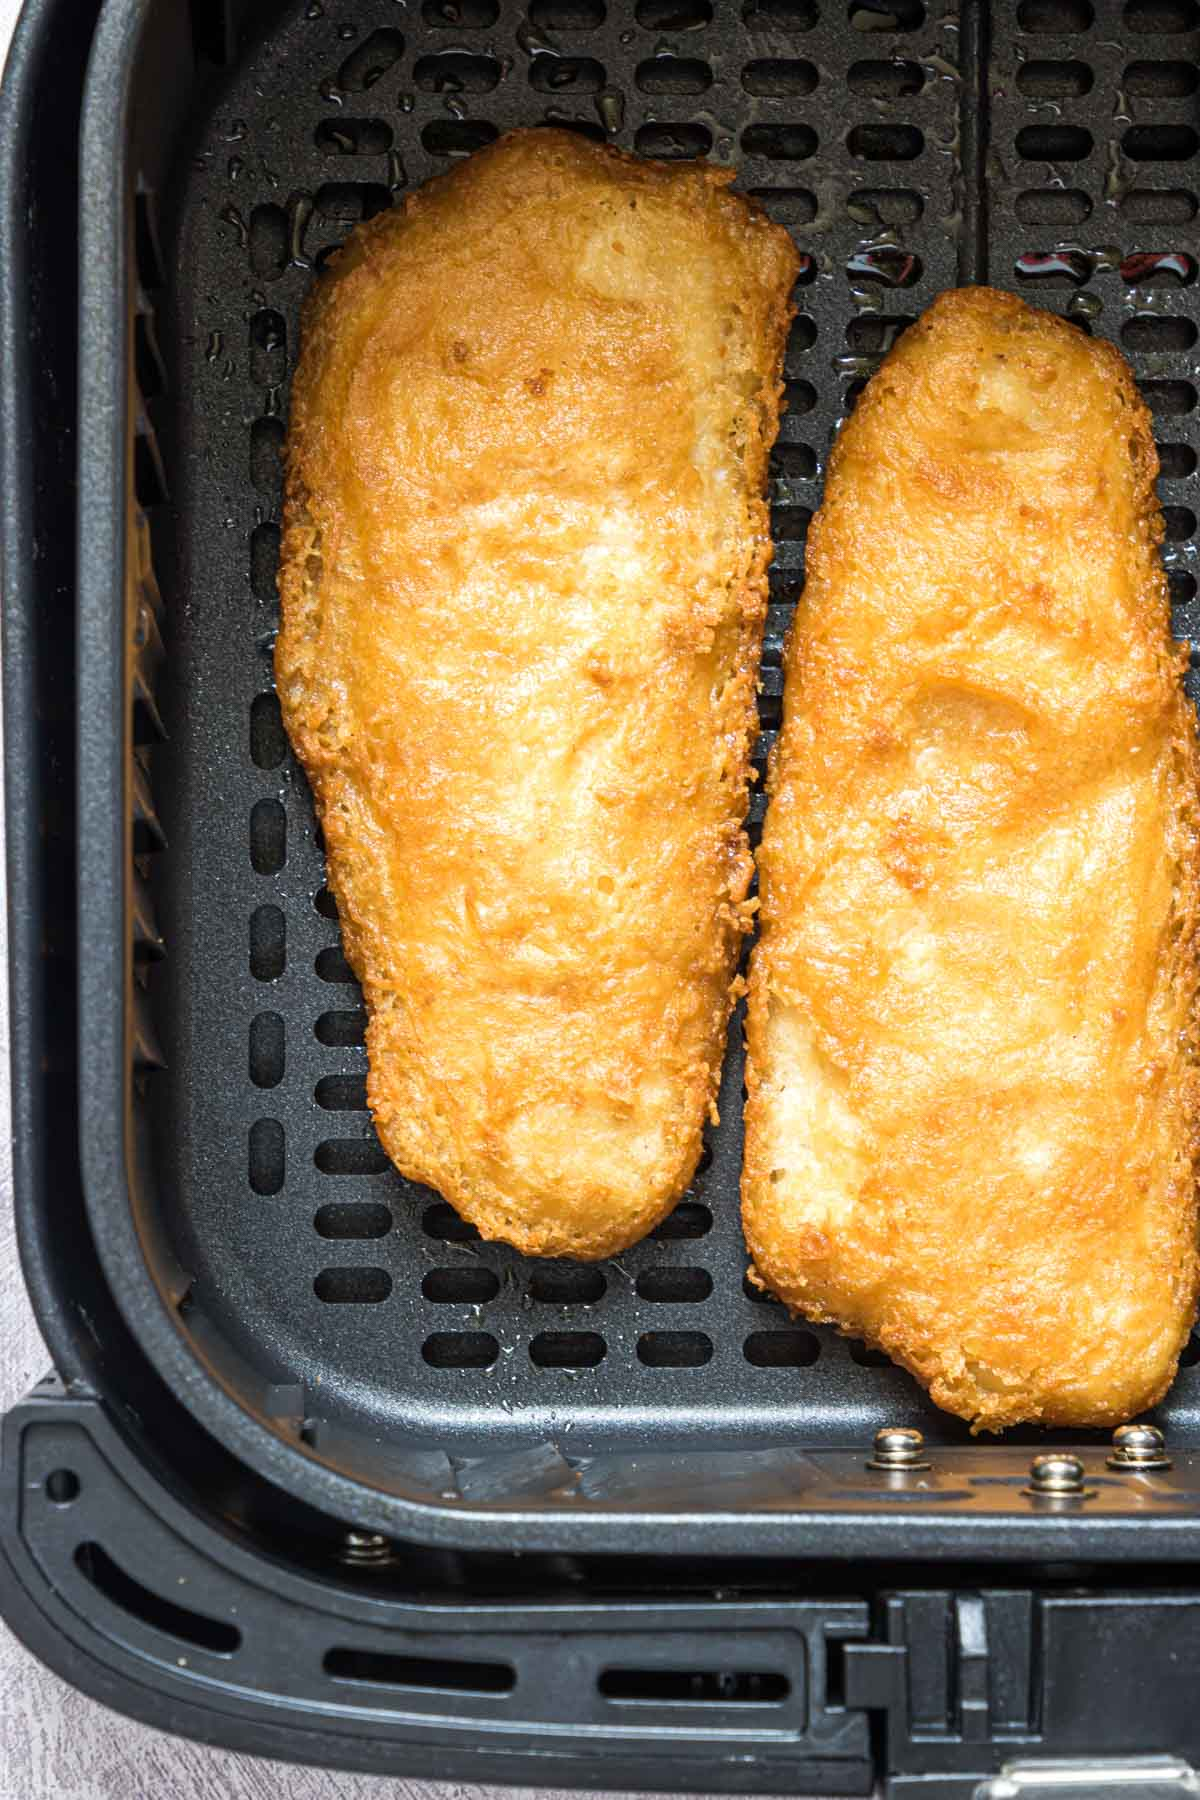 close up view of reheat fried fish inside the air fryer basket